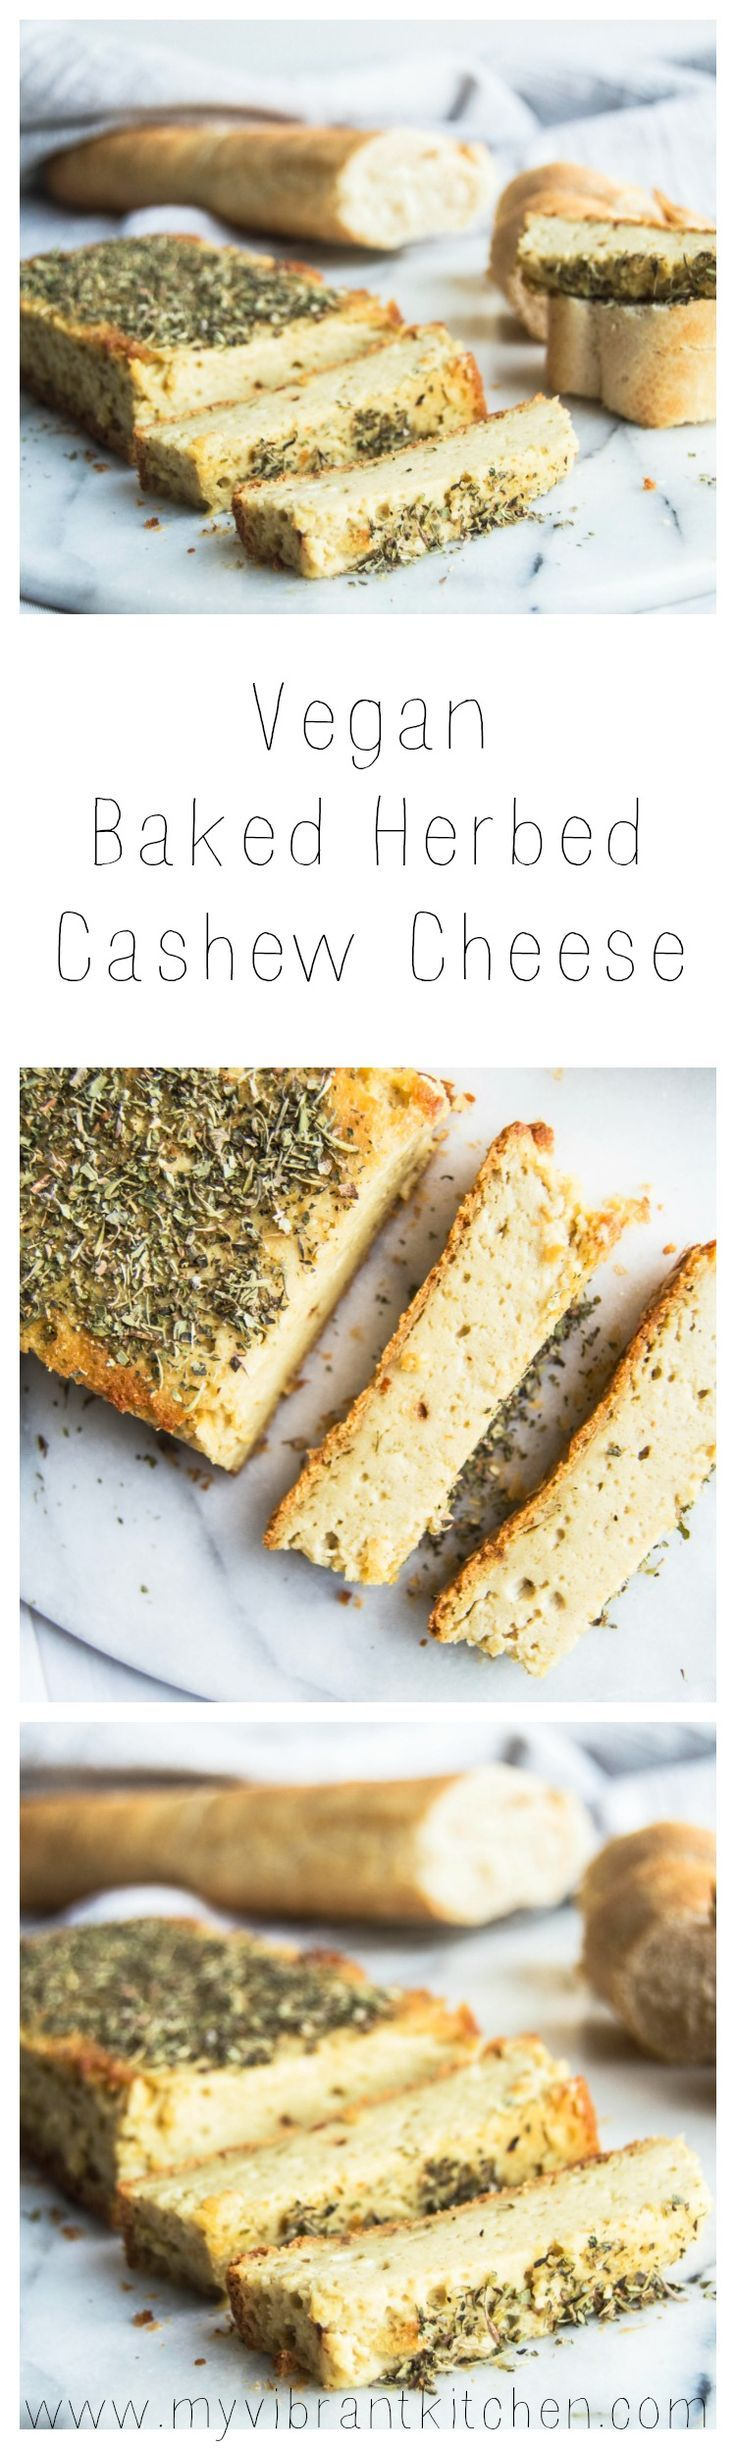 My Vibrant Kitchen | Vegan Baked Herbed Cashew Cheese | myvibrantkitchen.com